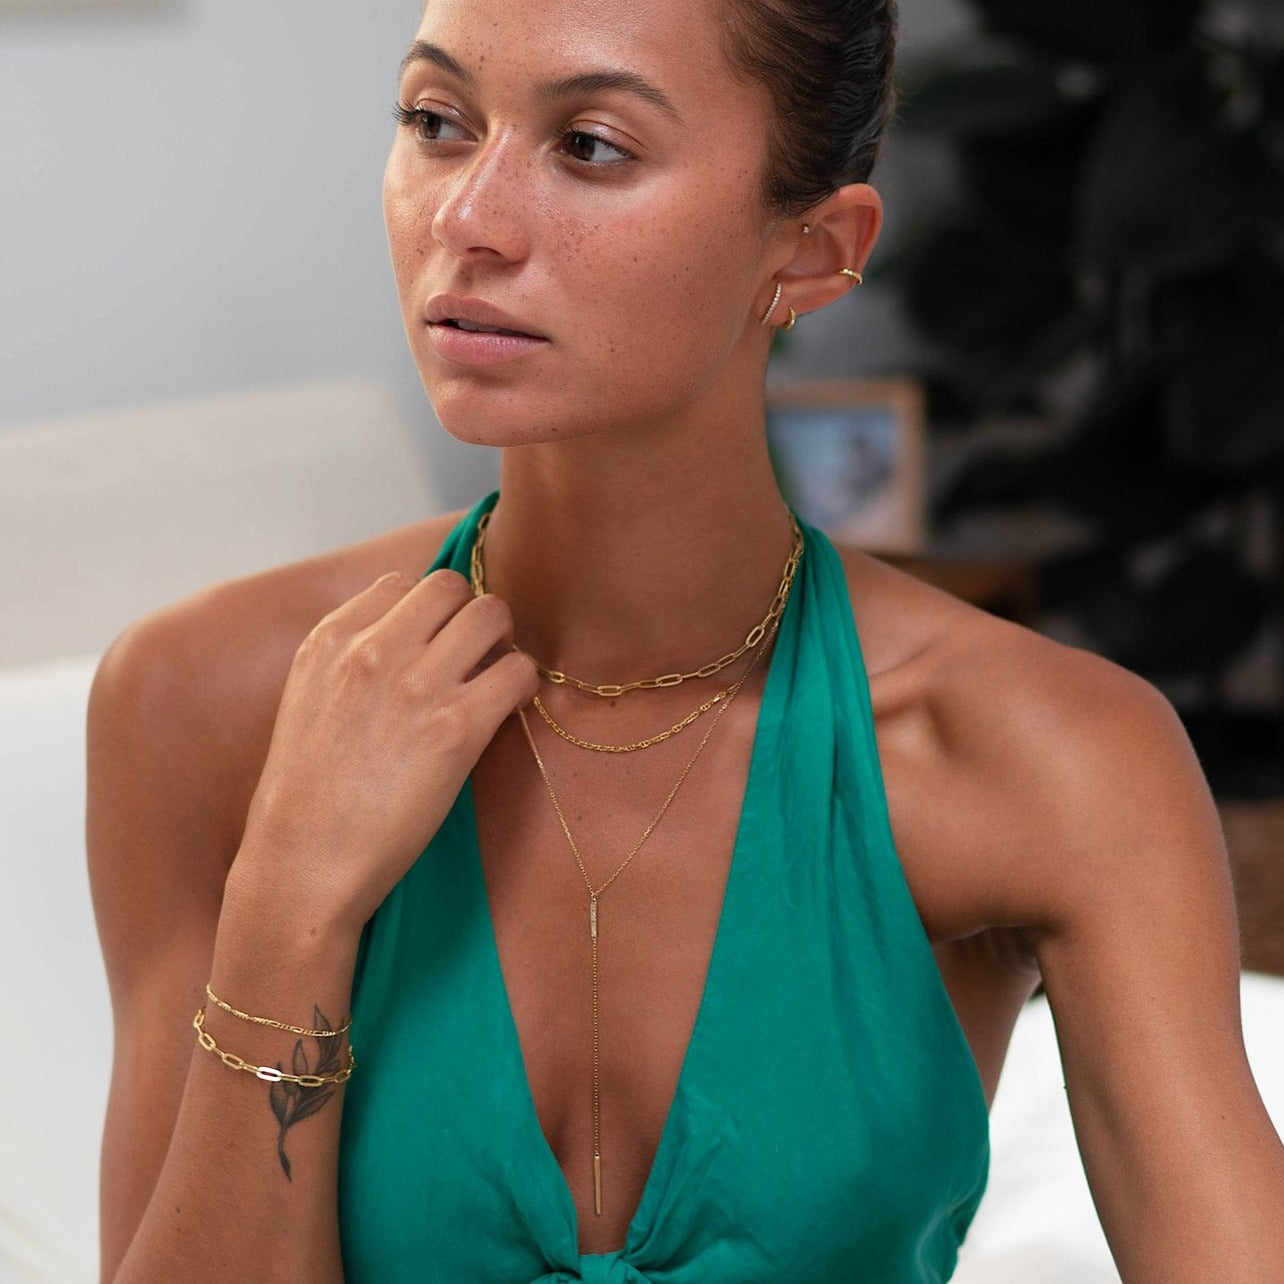 Model wearing Gold Link Chain, Marina and Bar Lariat Layered Necklace